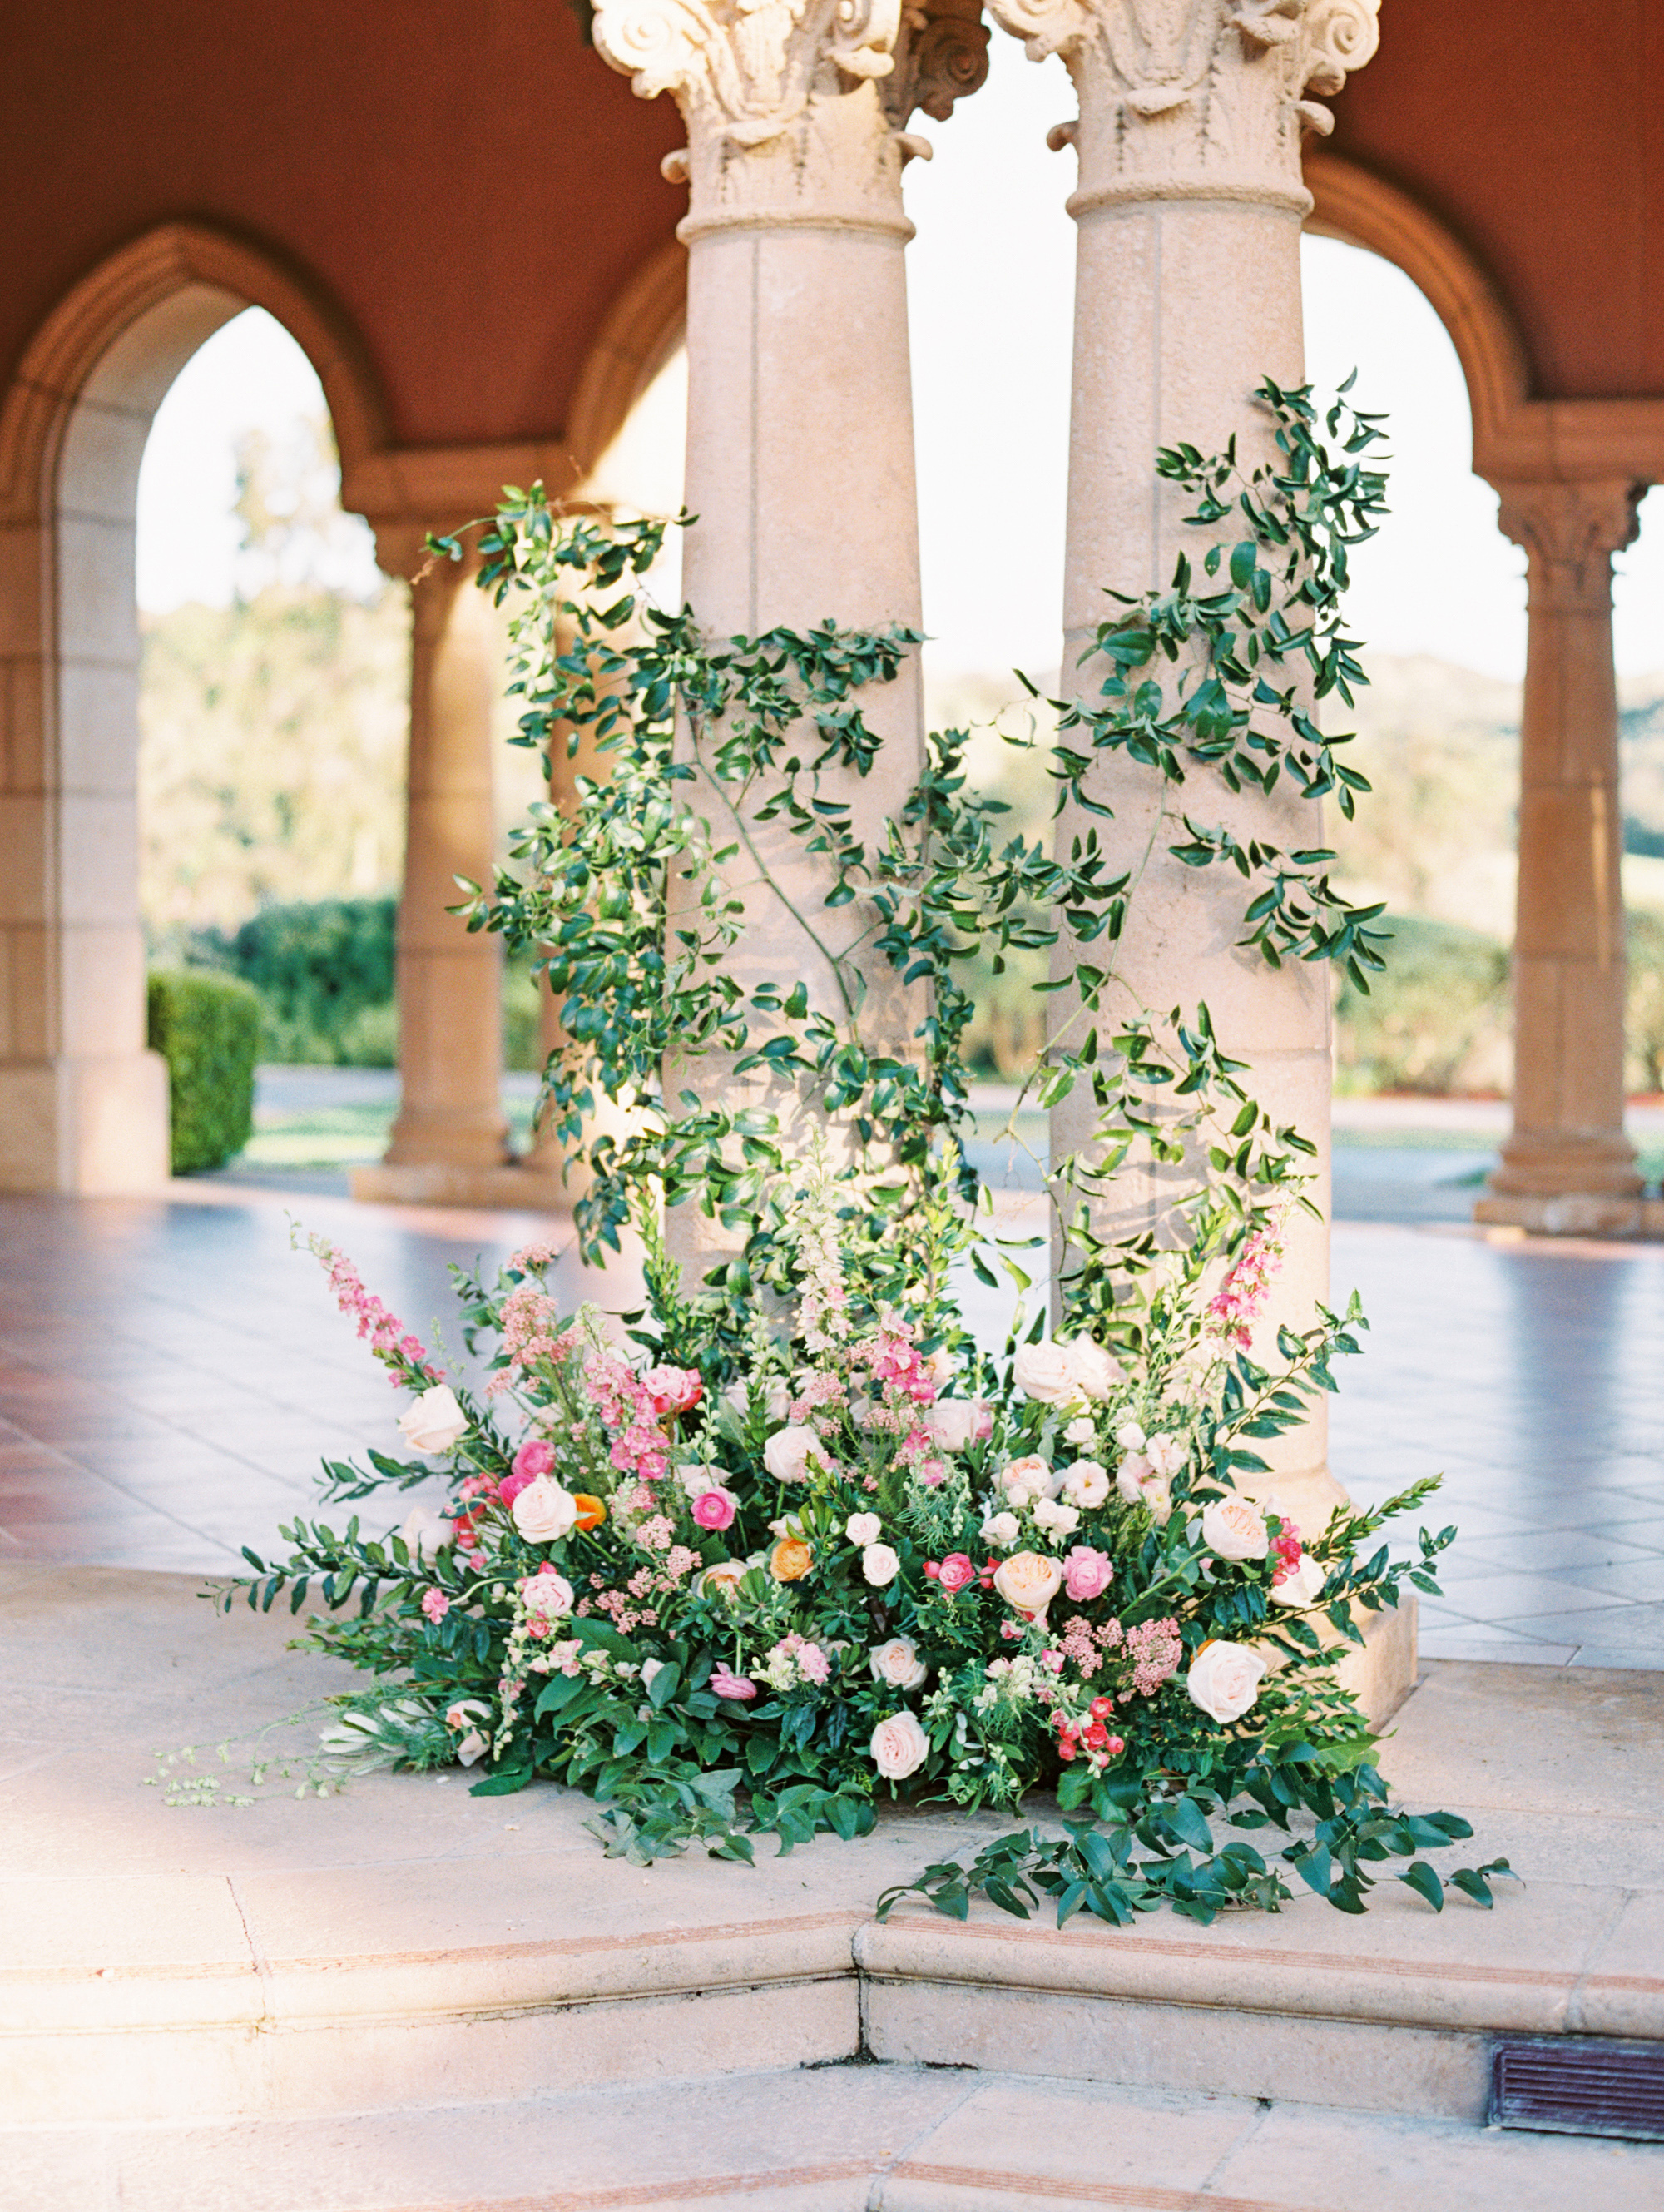 cavin david wedding floral installation in front of columns